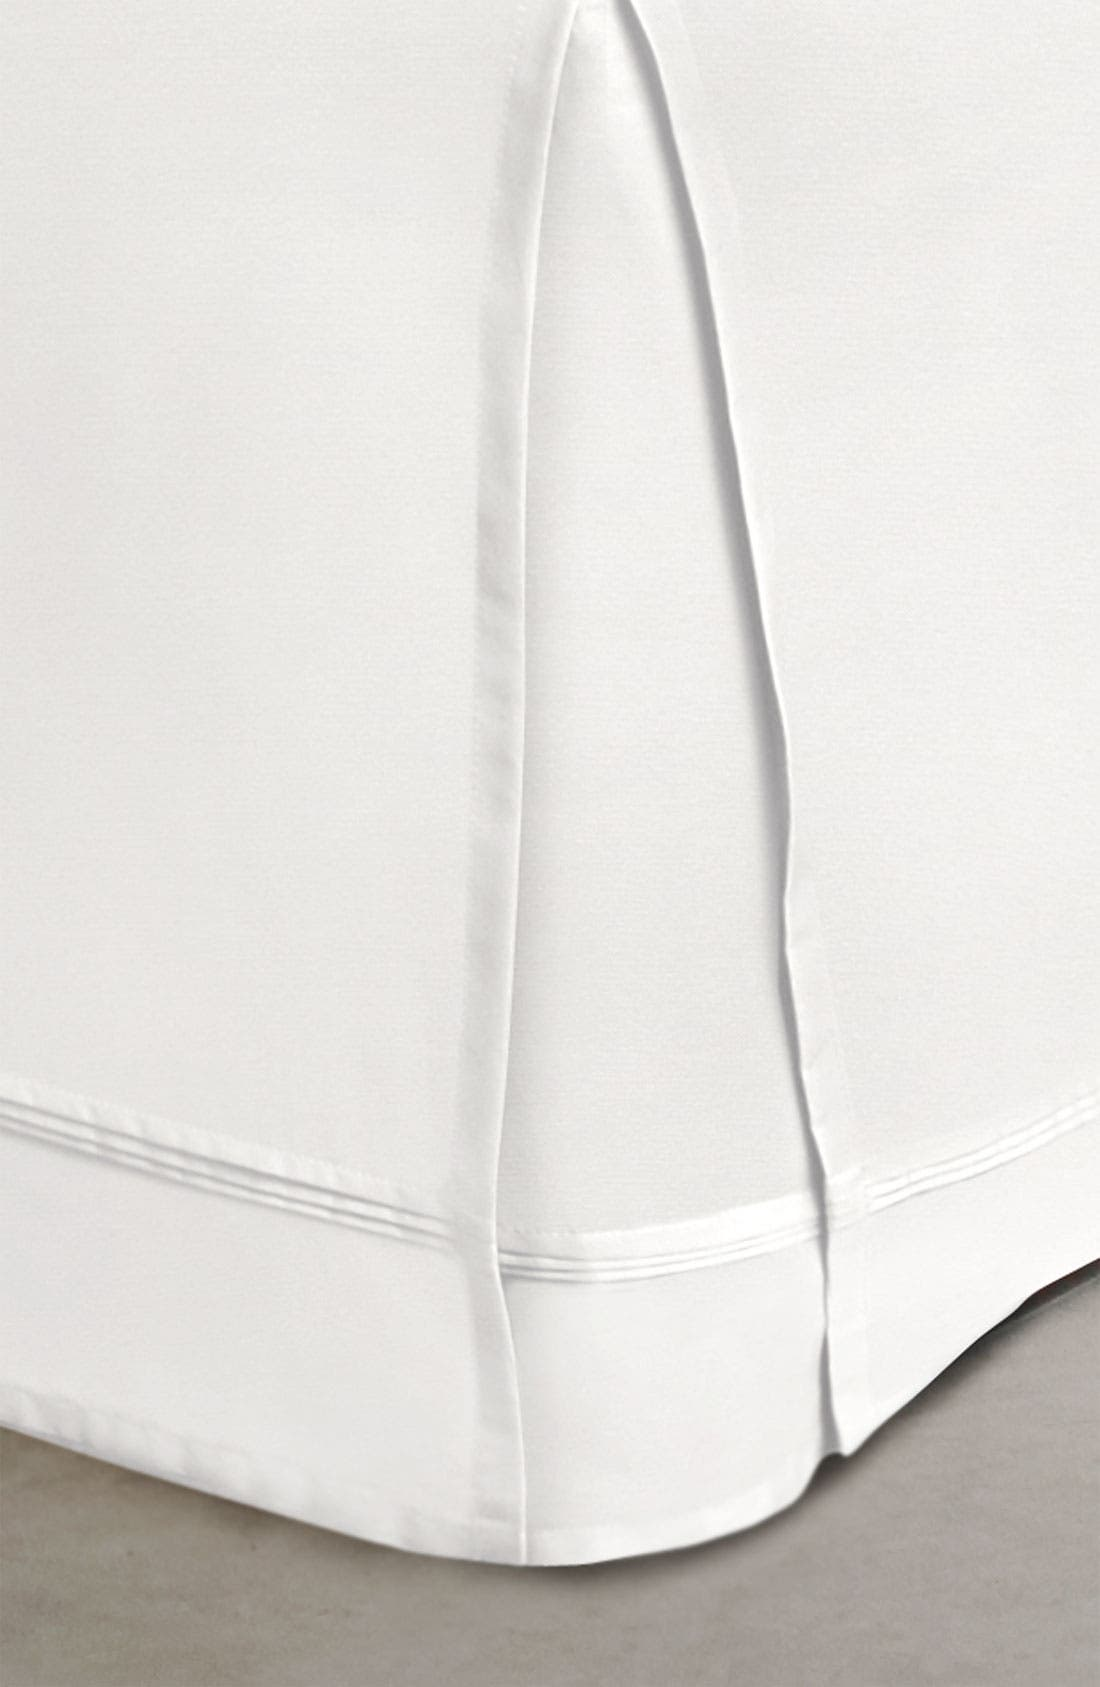 Main Image - Donna Karan 'Lustre Seam' Bed Skirt